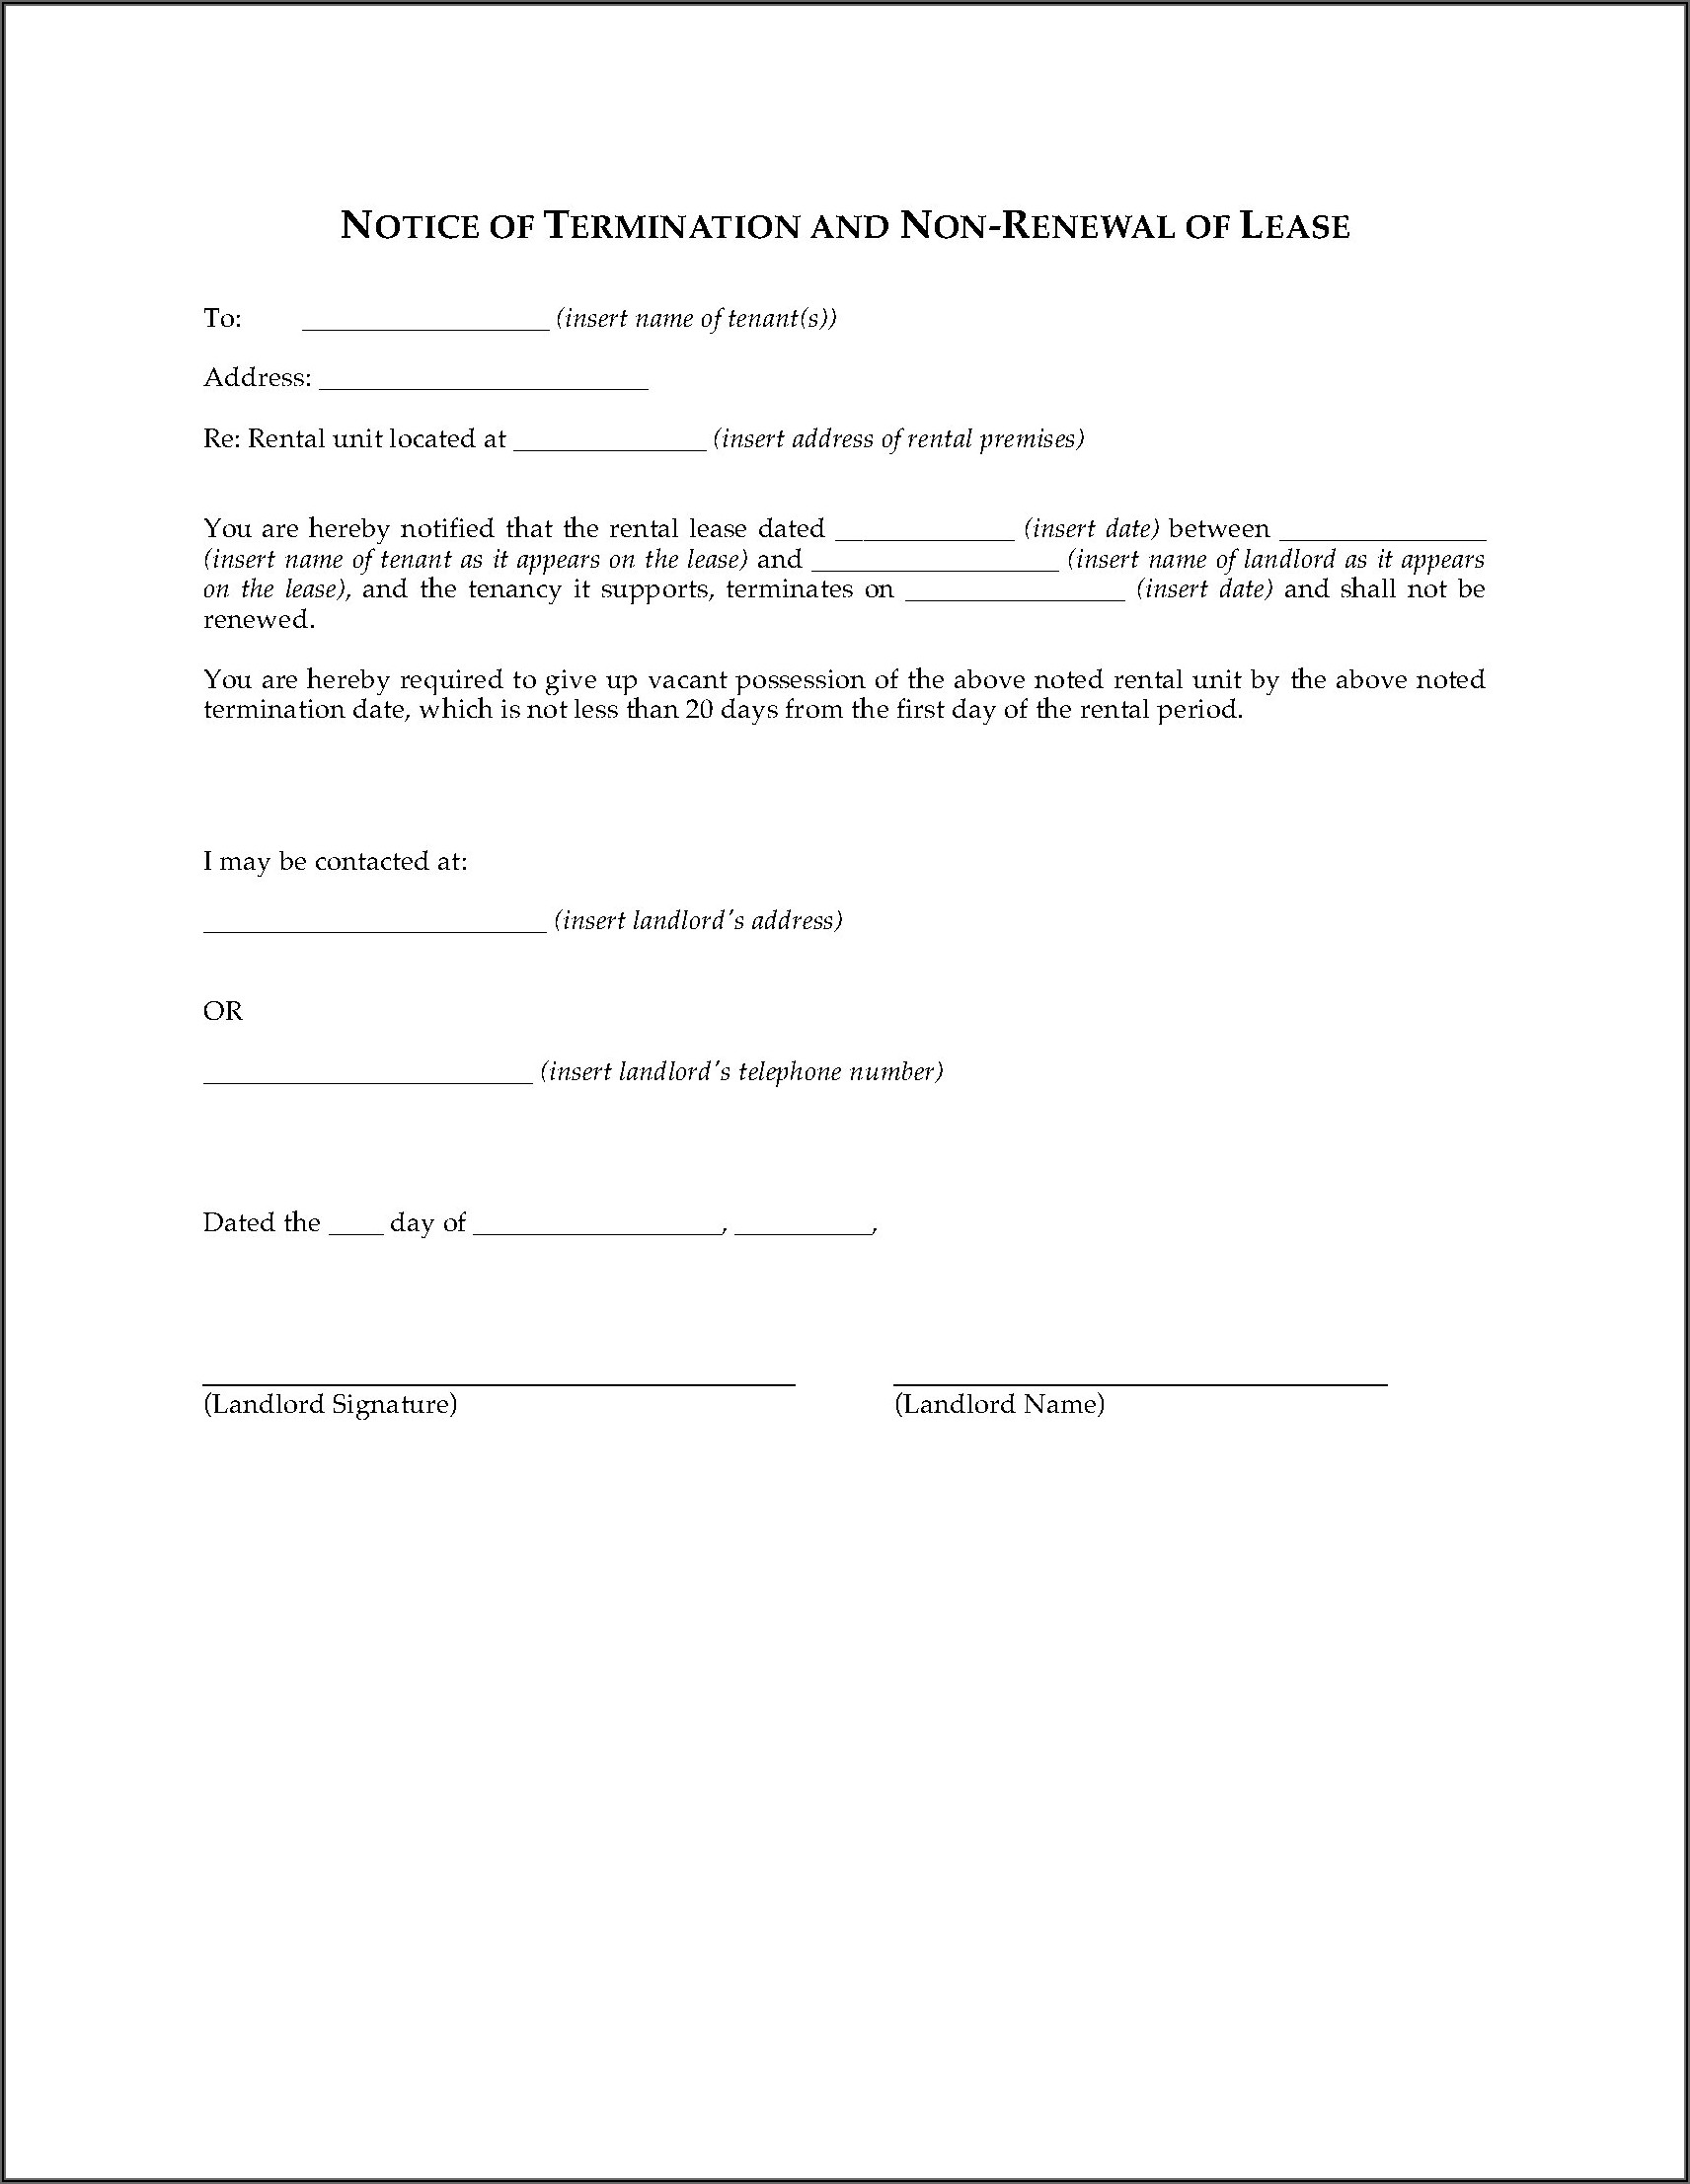 Florida Non Renewal Of Lease Form